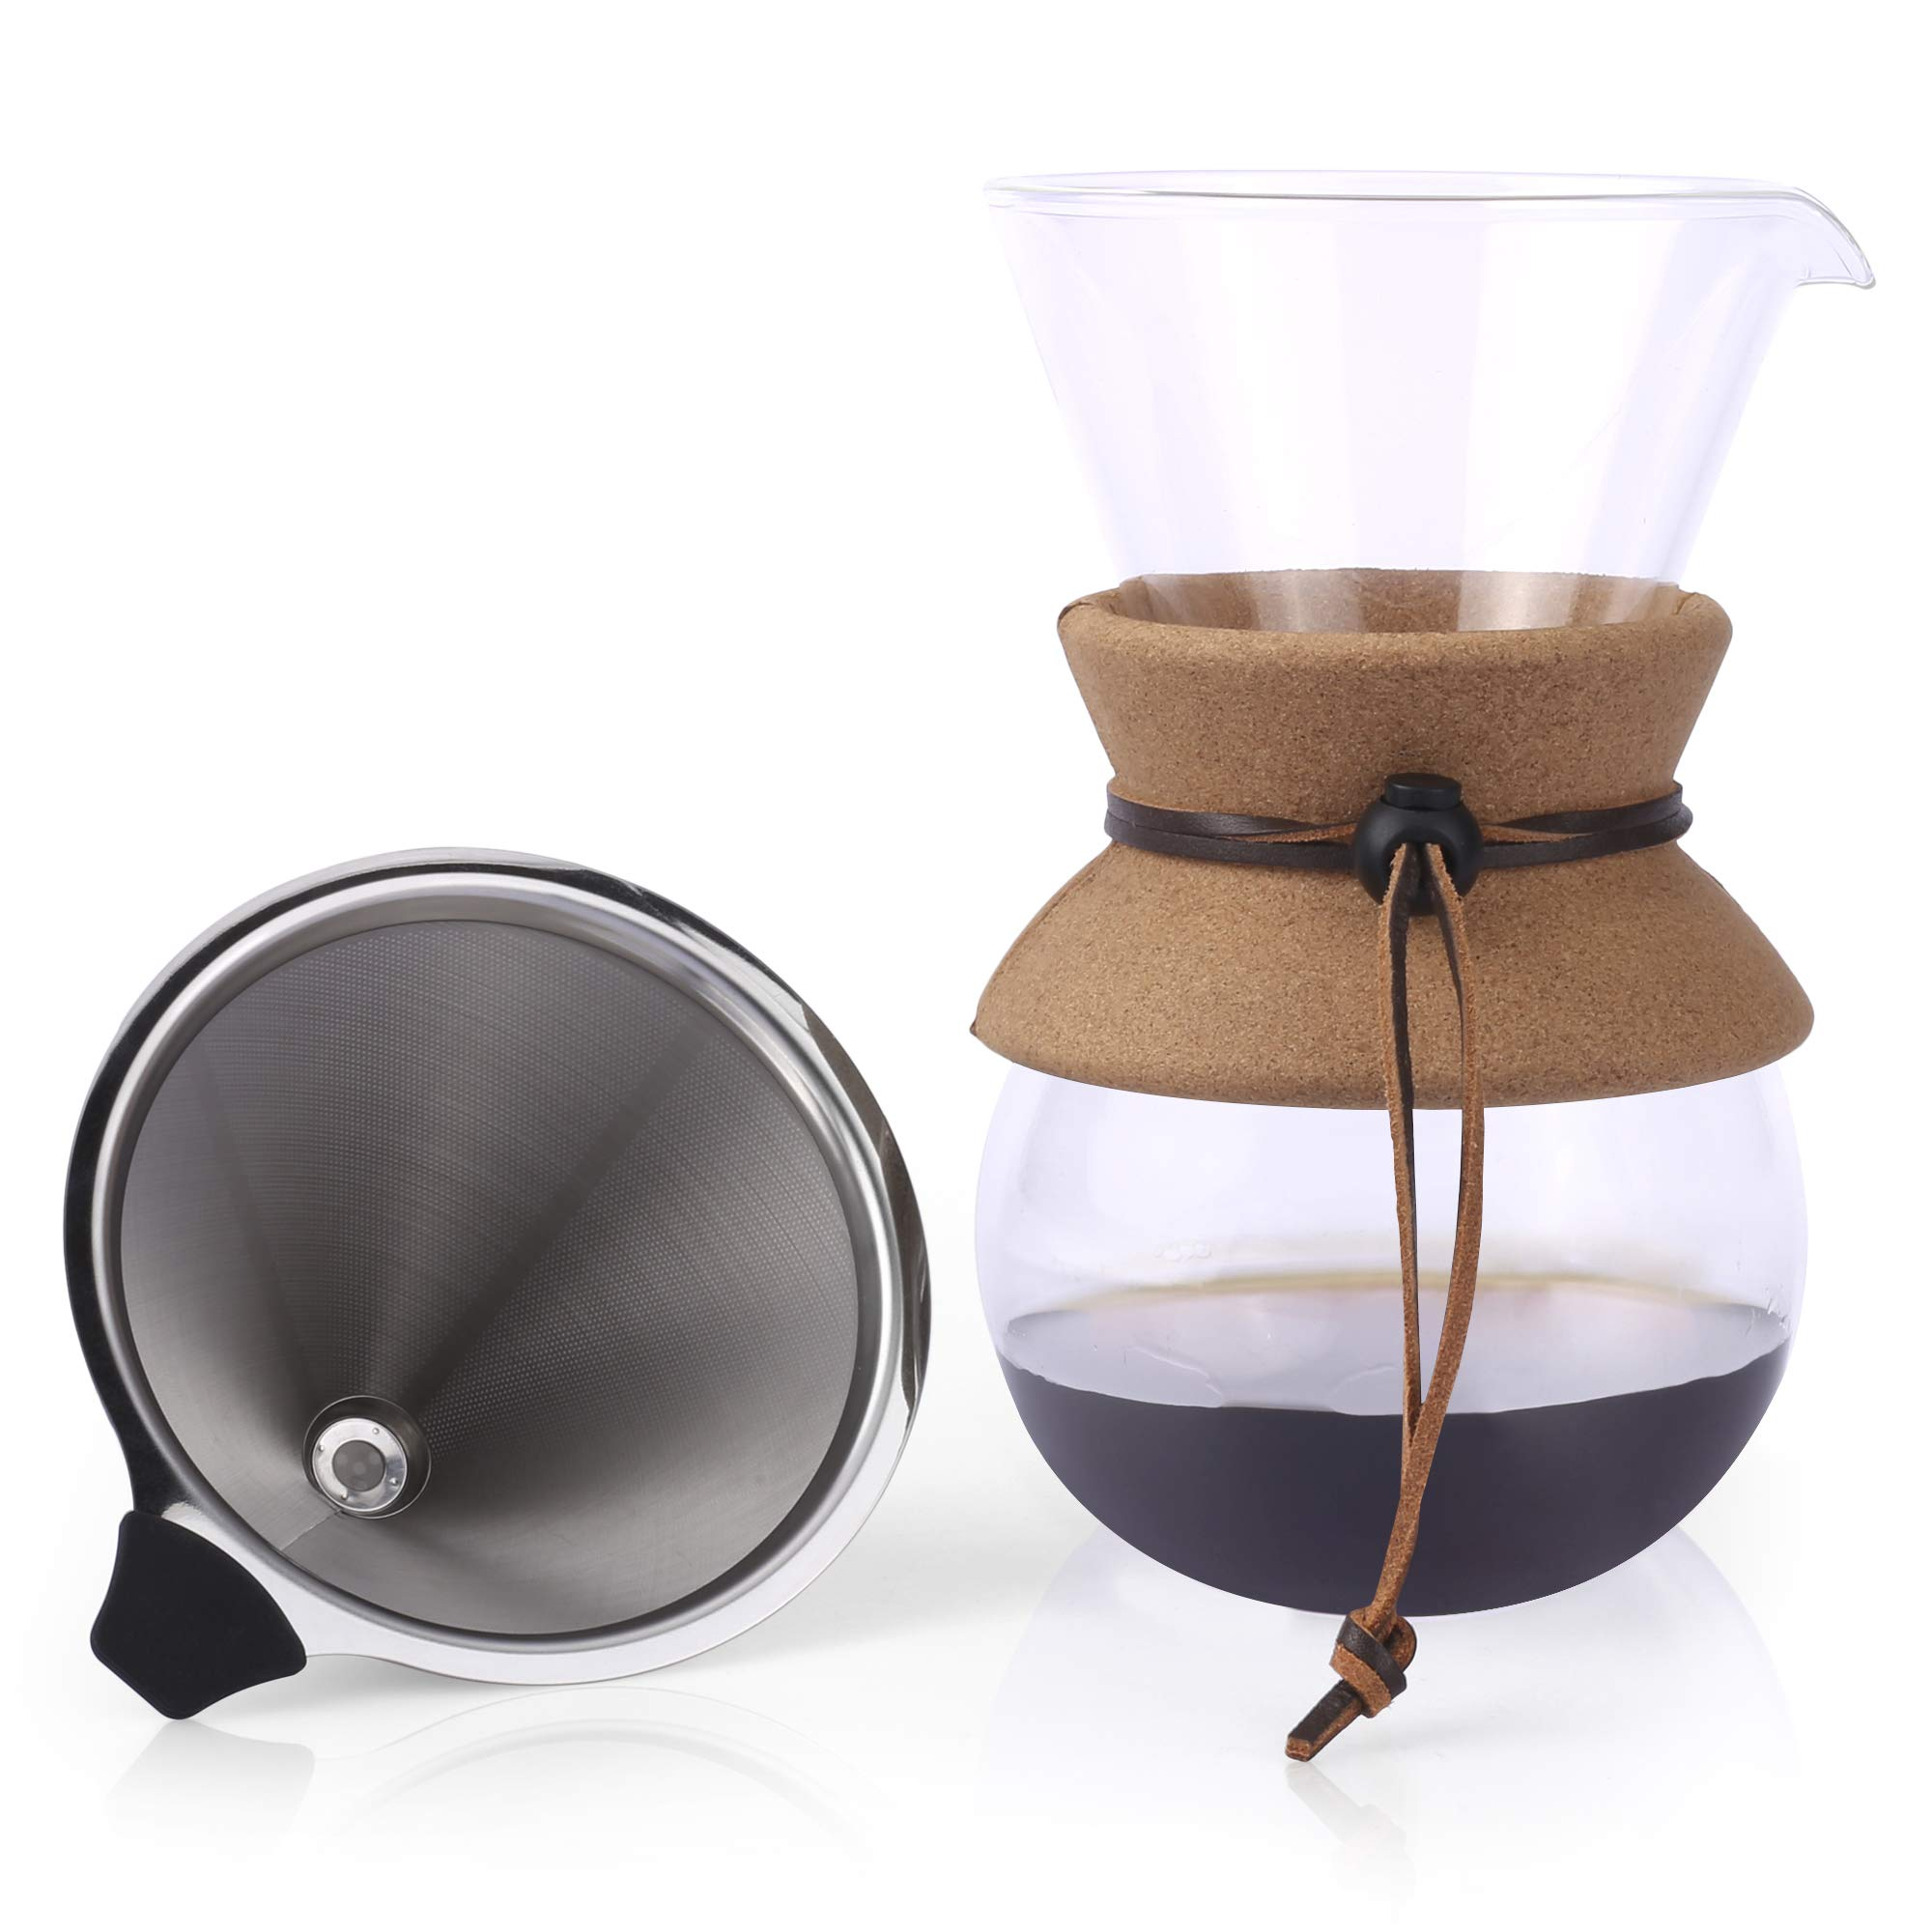 Apace Living Pour Over Coffee Maker - 2019 Edition - Elegant Coffee Dripper Brewer Pot w/Glass Carafe & Permanent Stainless Steel Filter (27 oz) by Apace Living